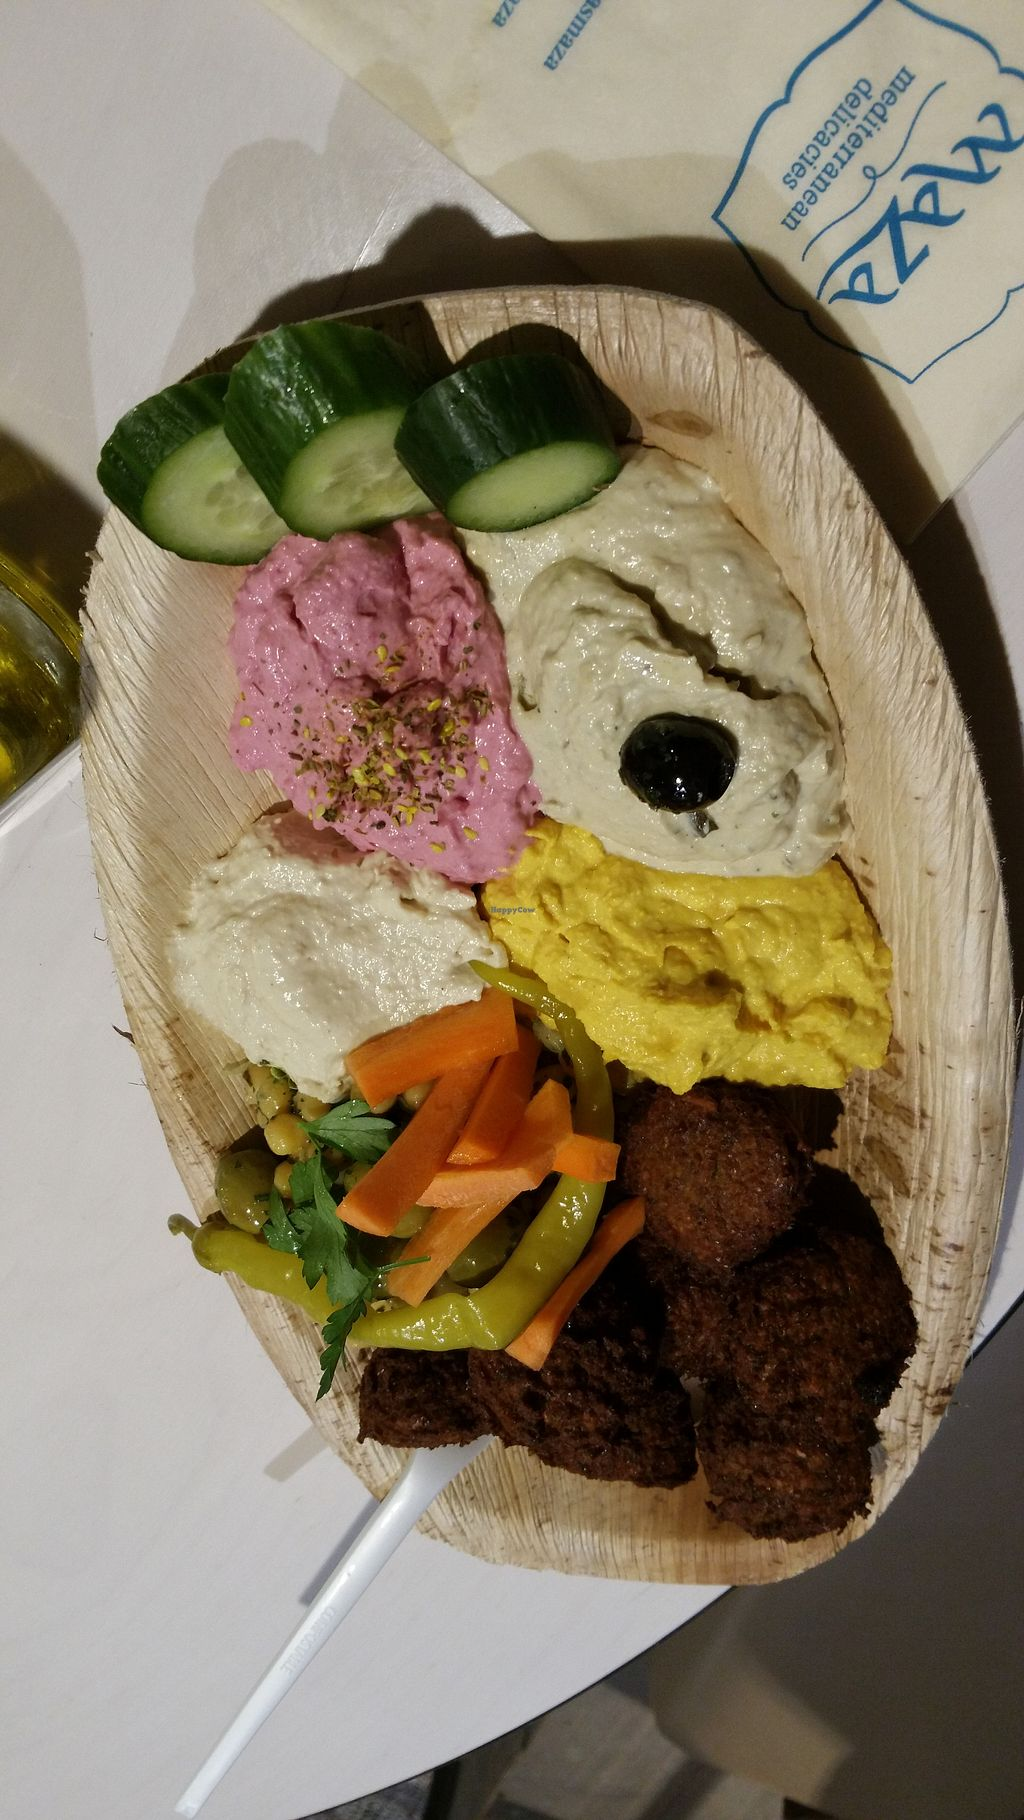 """Photo of Maza Mediterranean Delicacies  by <a href=""""/members/profile/Mallorcatalks"""">Mallorcatalks</a> <br/>Mixed hummus and falafel plate for 7,50 Euro (usually served with bread)  <br/> November 3, 2017  - <a href='/contact/abuse/image/75425/321544'>Report</a>"""